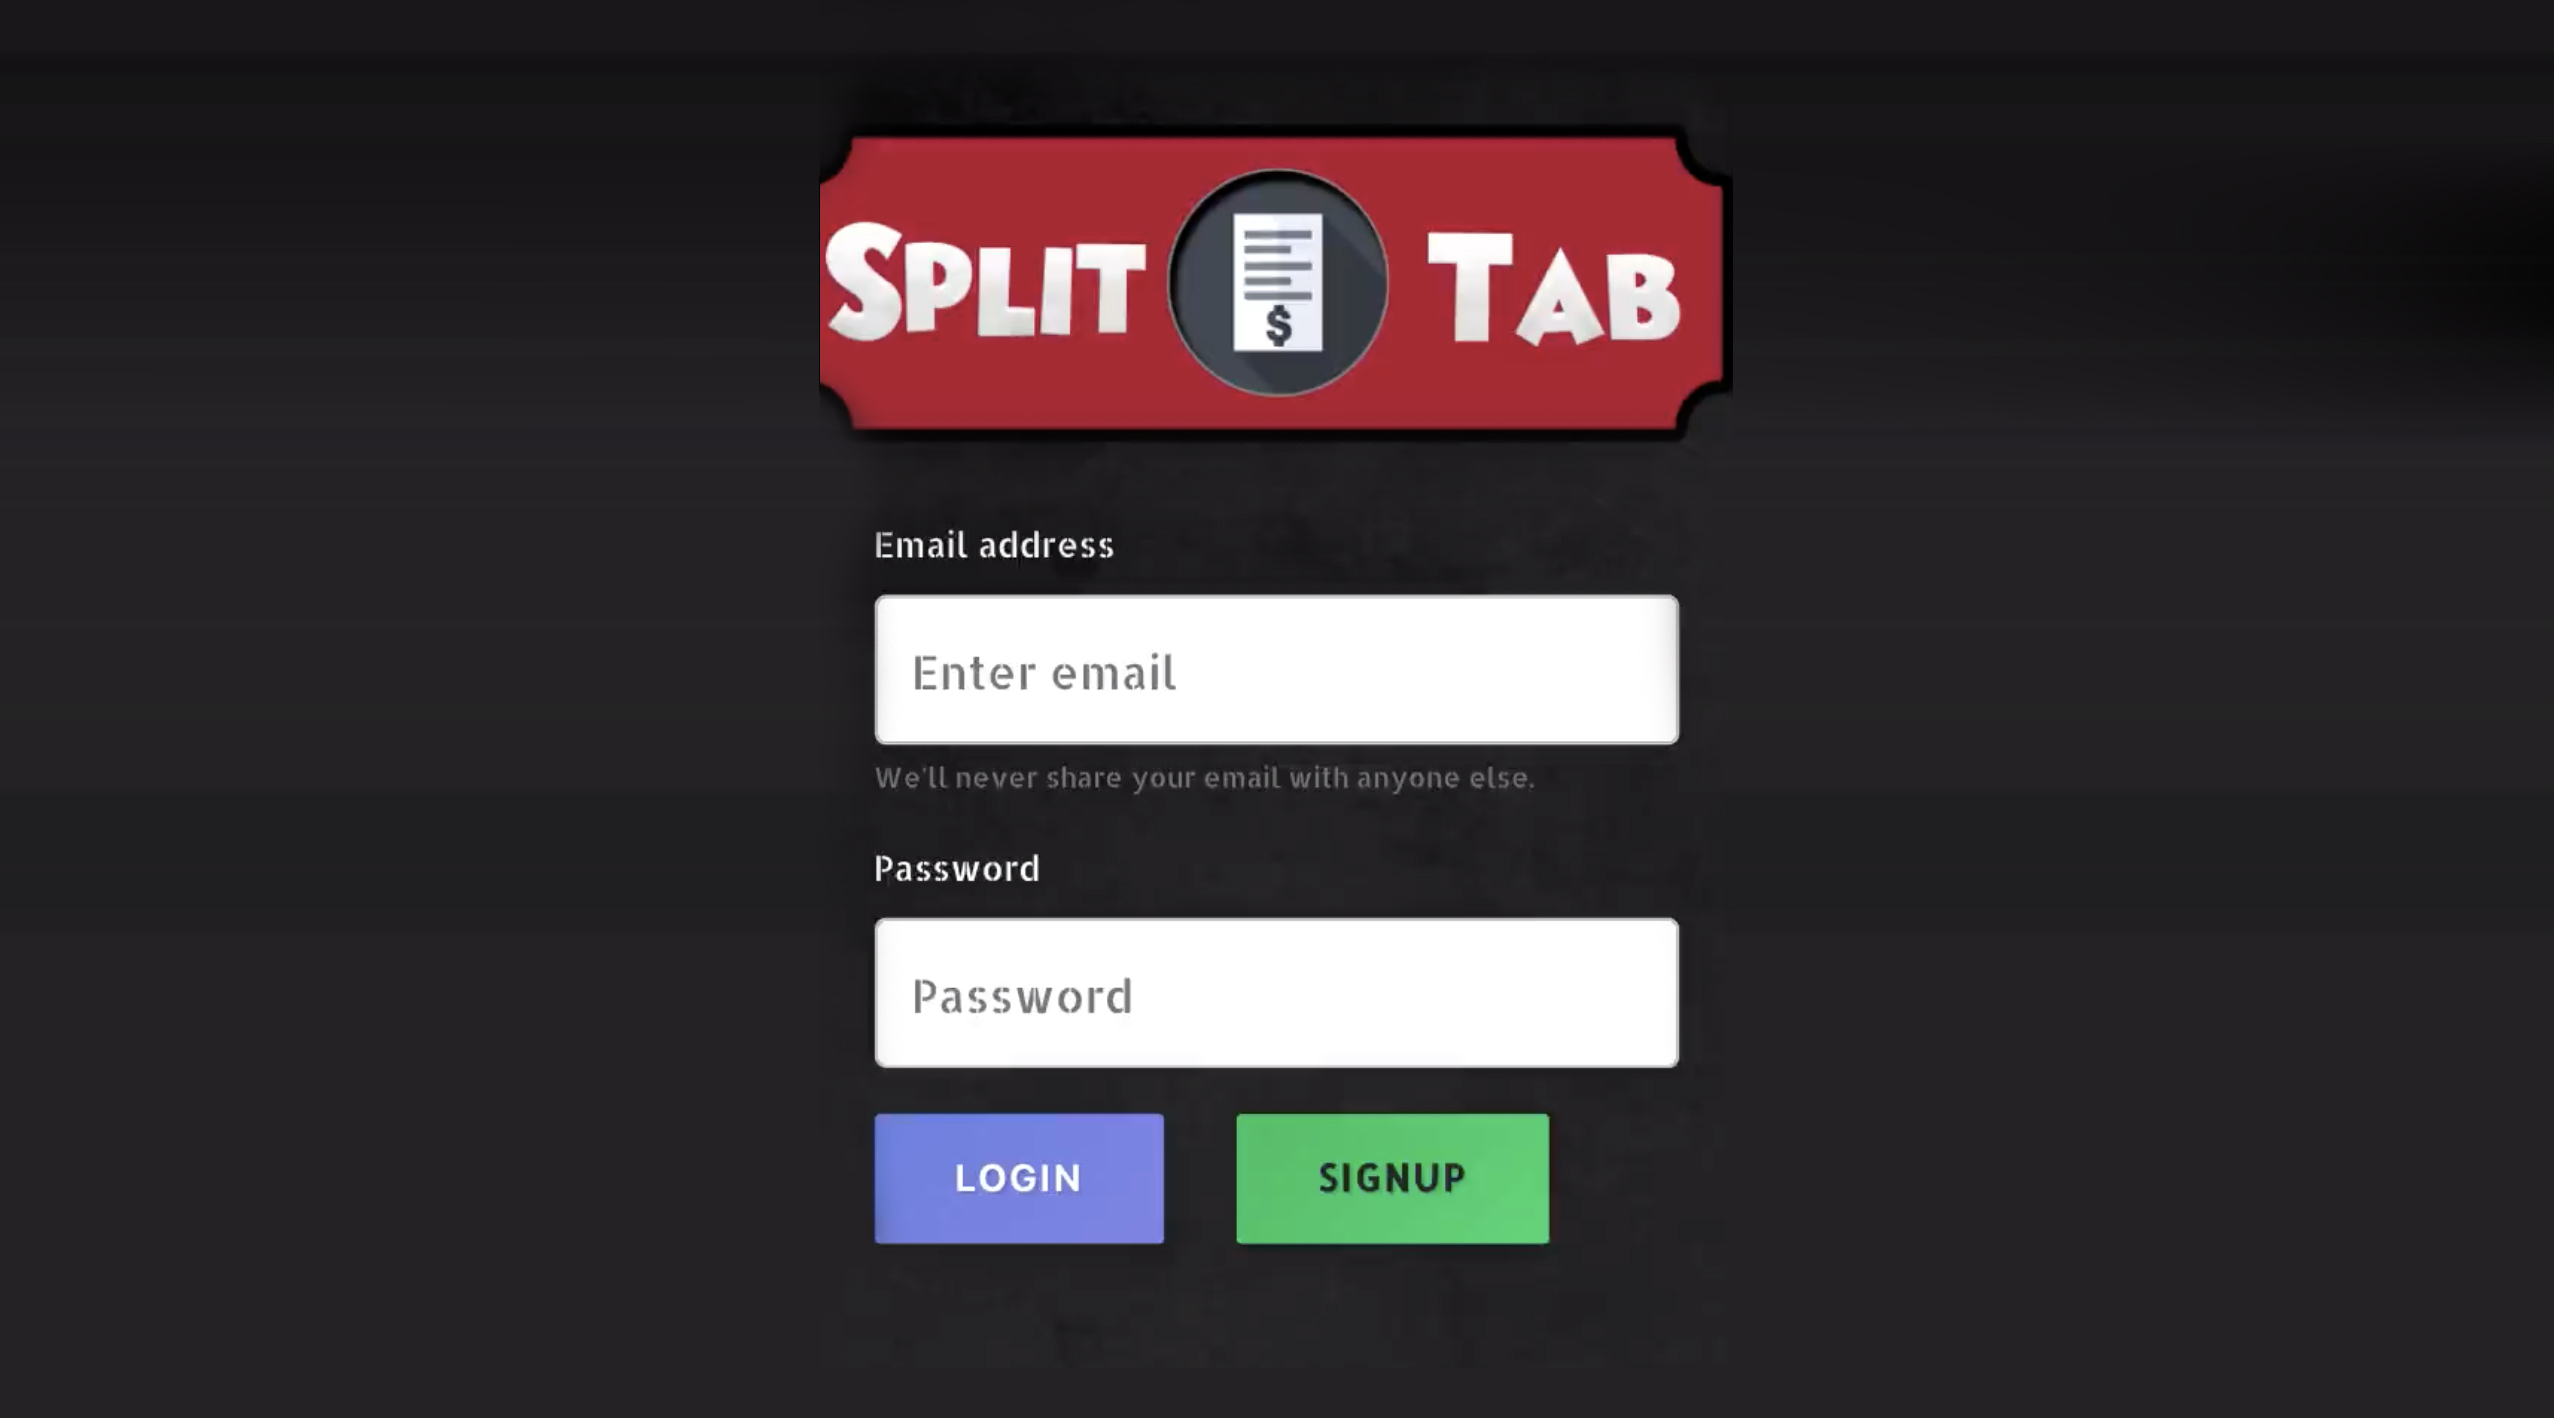 Split Tab application